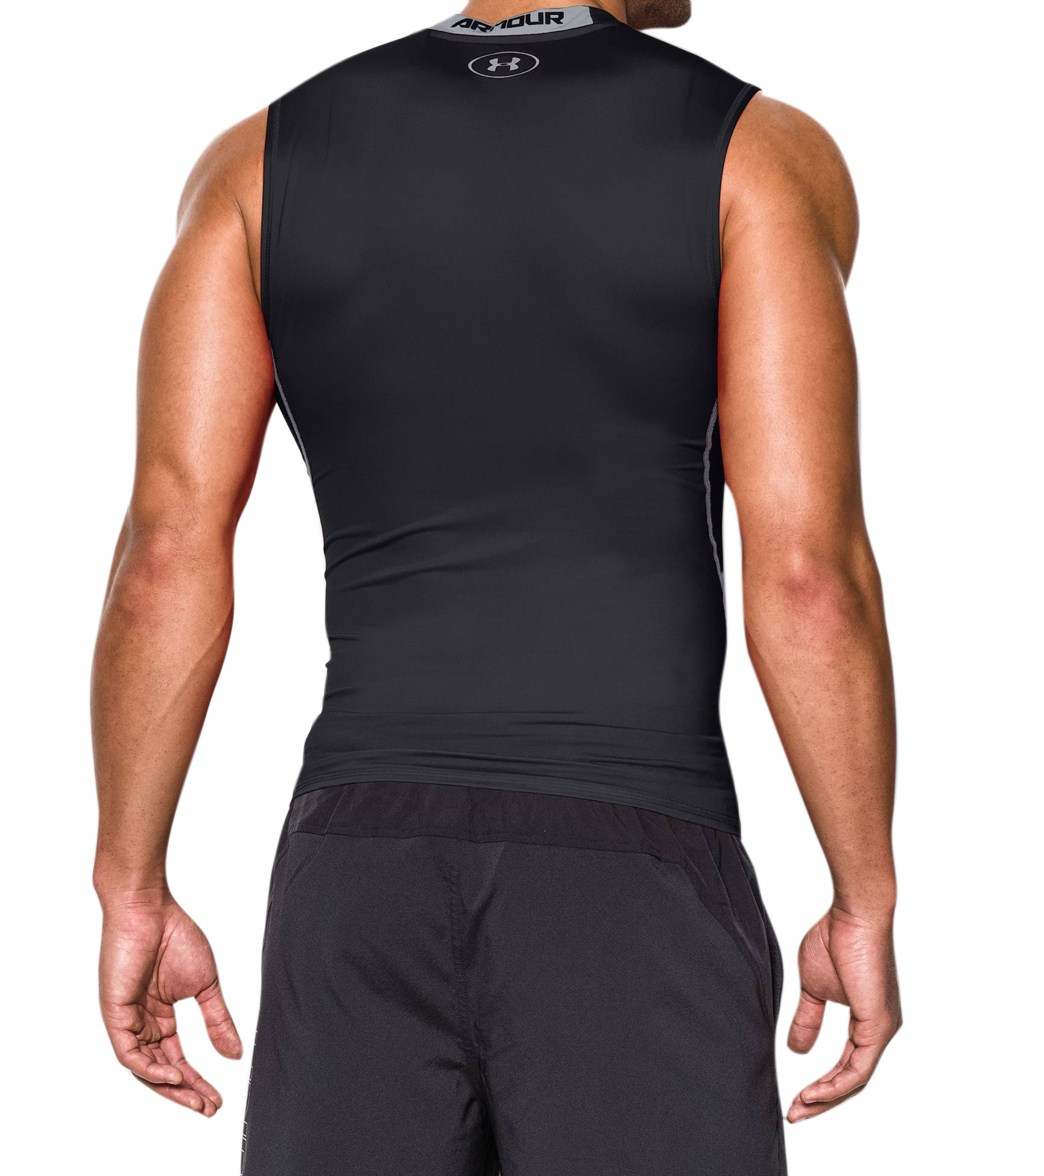 80828febb1fa7 Under Armour Men s HeatGear Armour Sleeveless Compression Shirt at ...